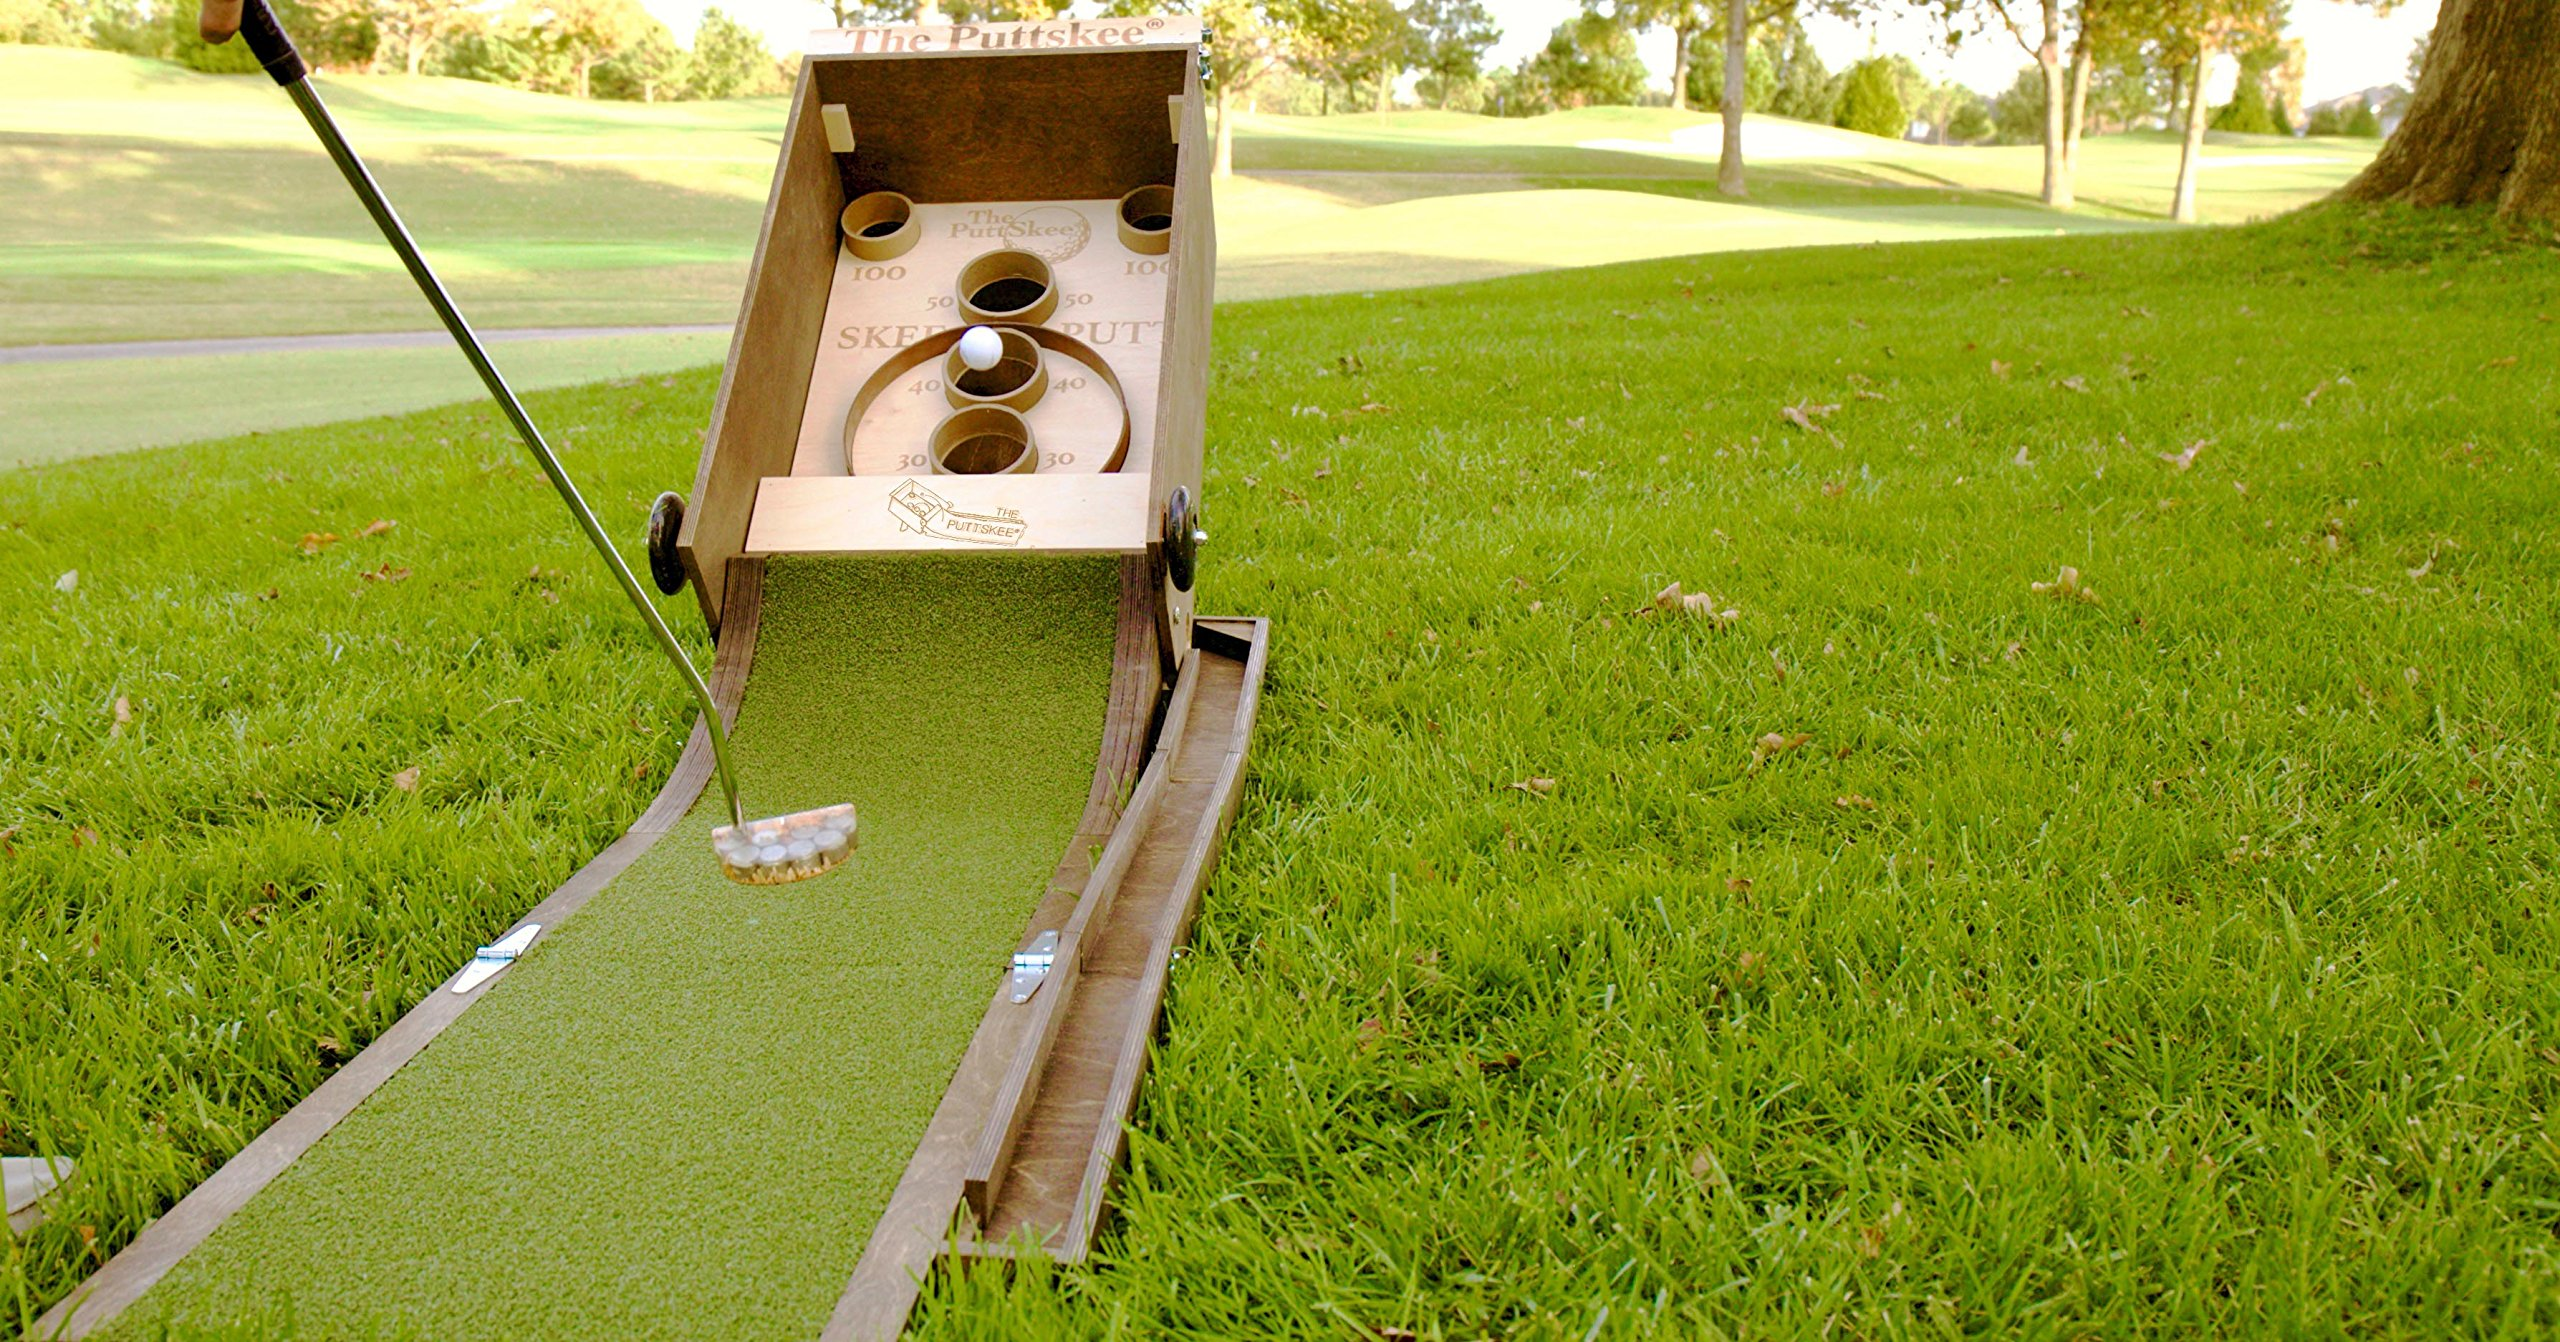 The Puttskee - Putting meets the arcade to bring you the premium in portable putting!! (Handcrafted in America)